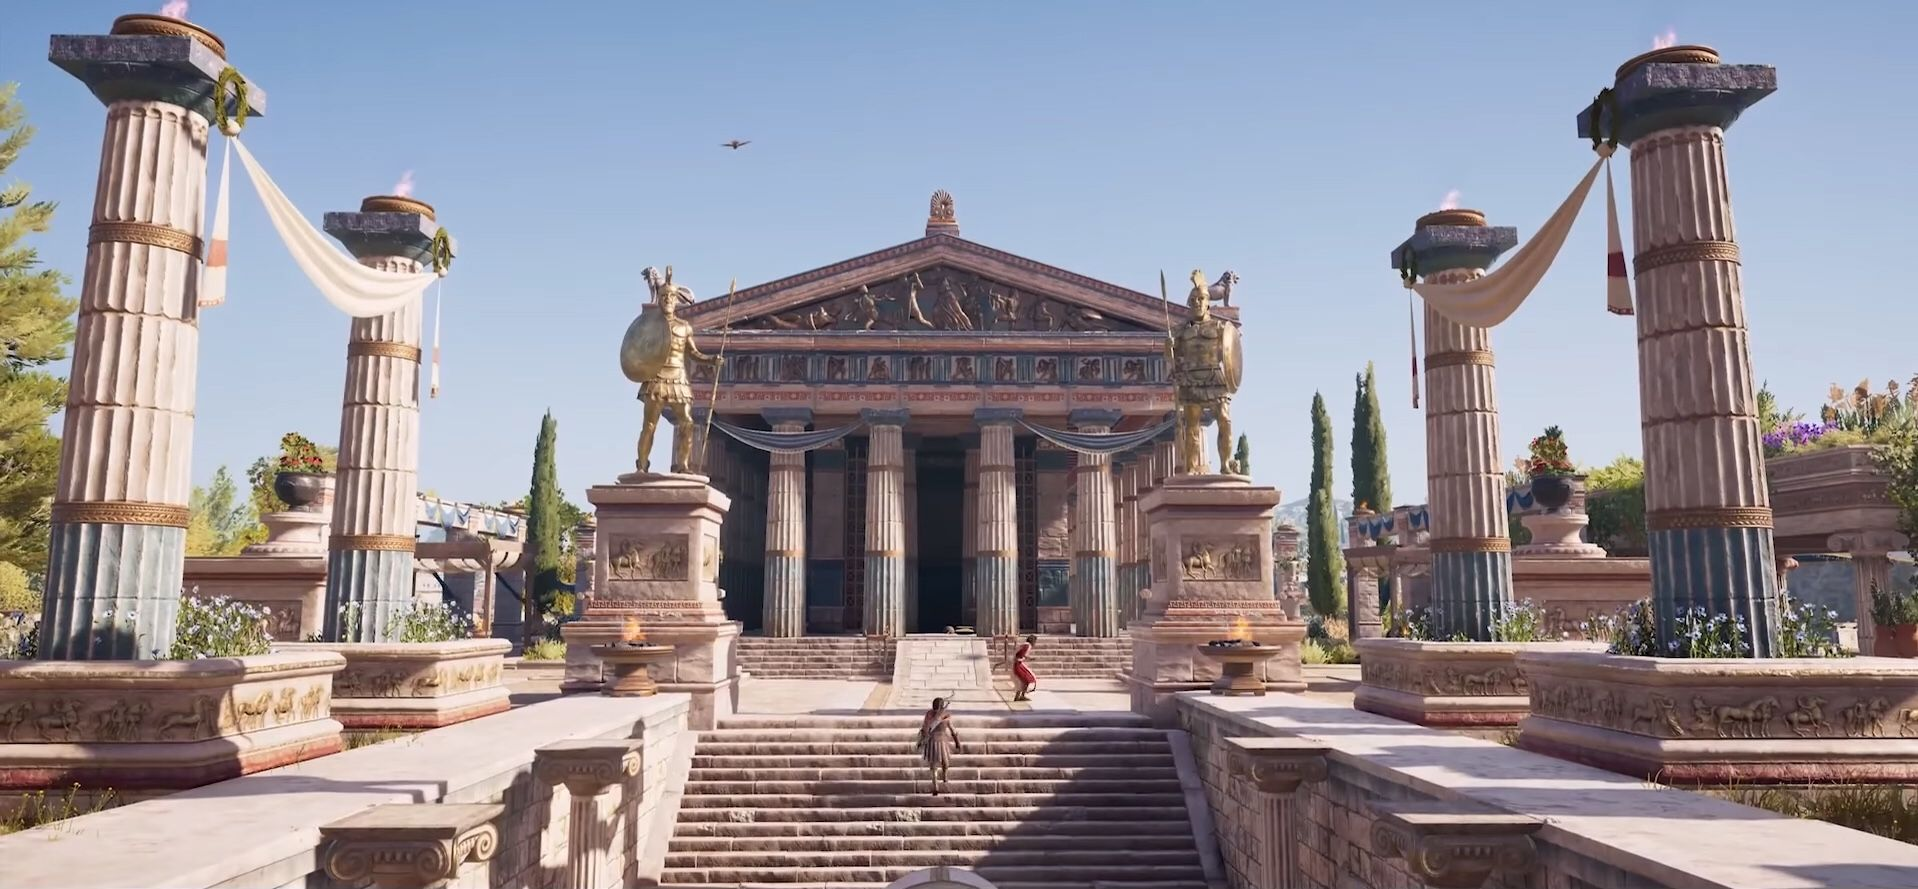 The Temple Of Hephaestus Is A Doric Peripteral Temple And